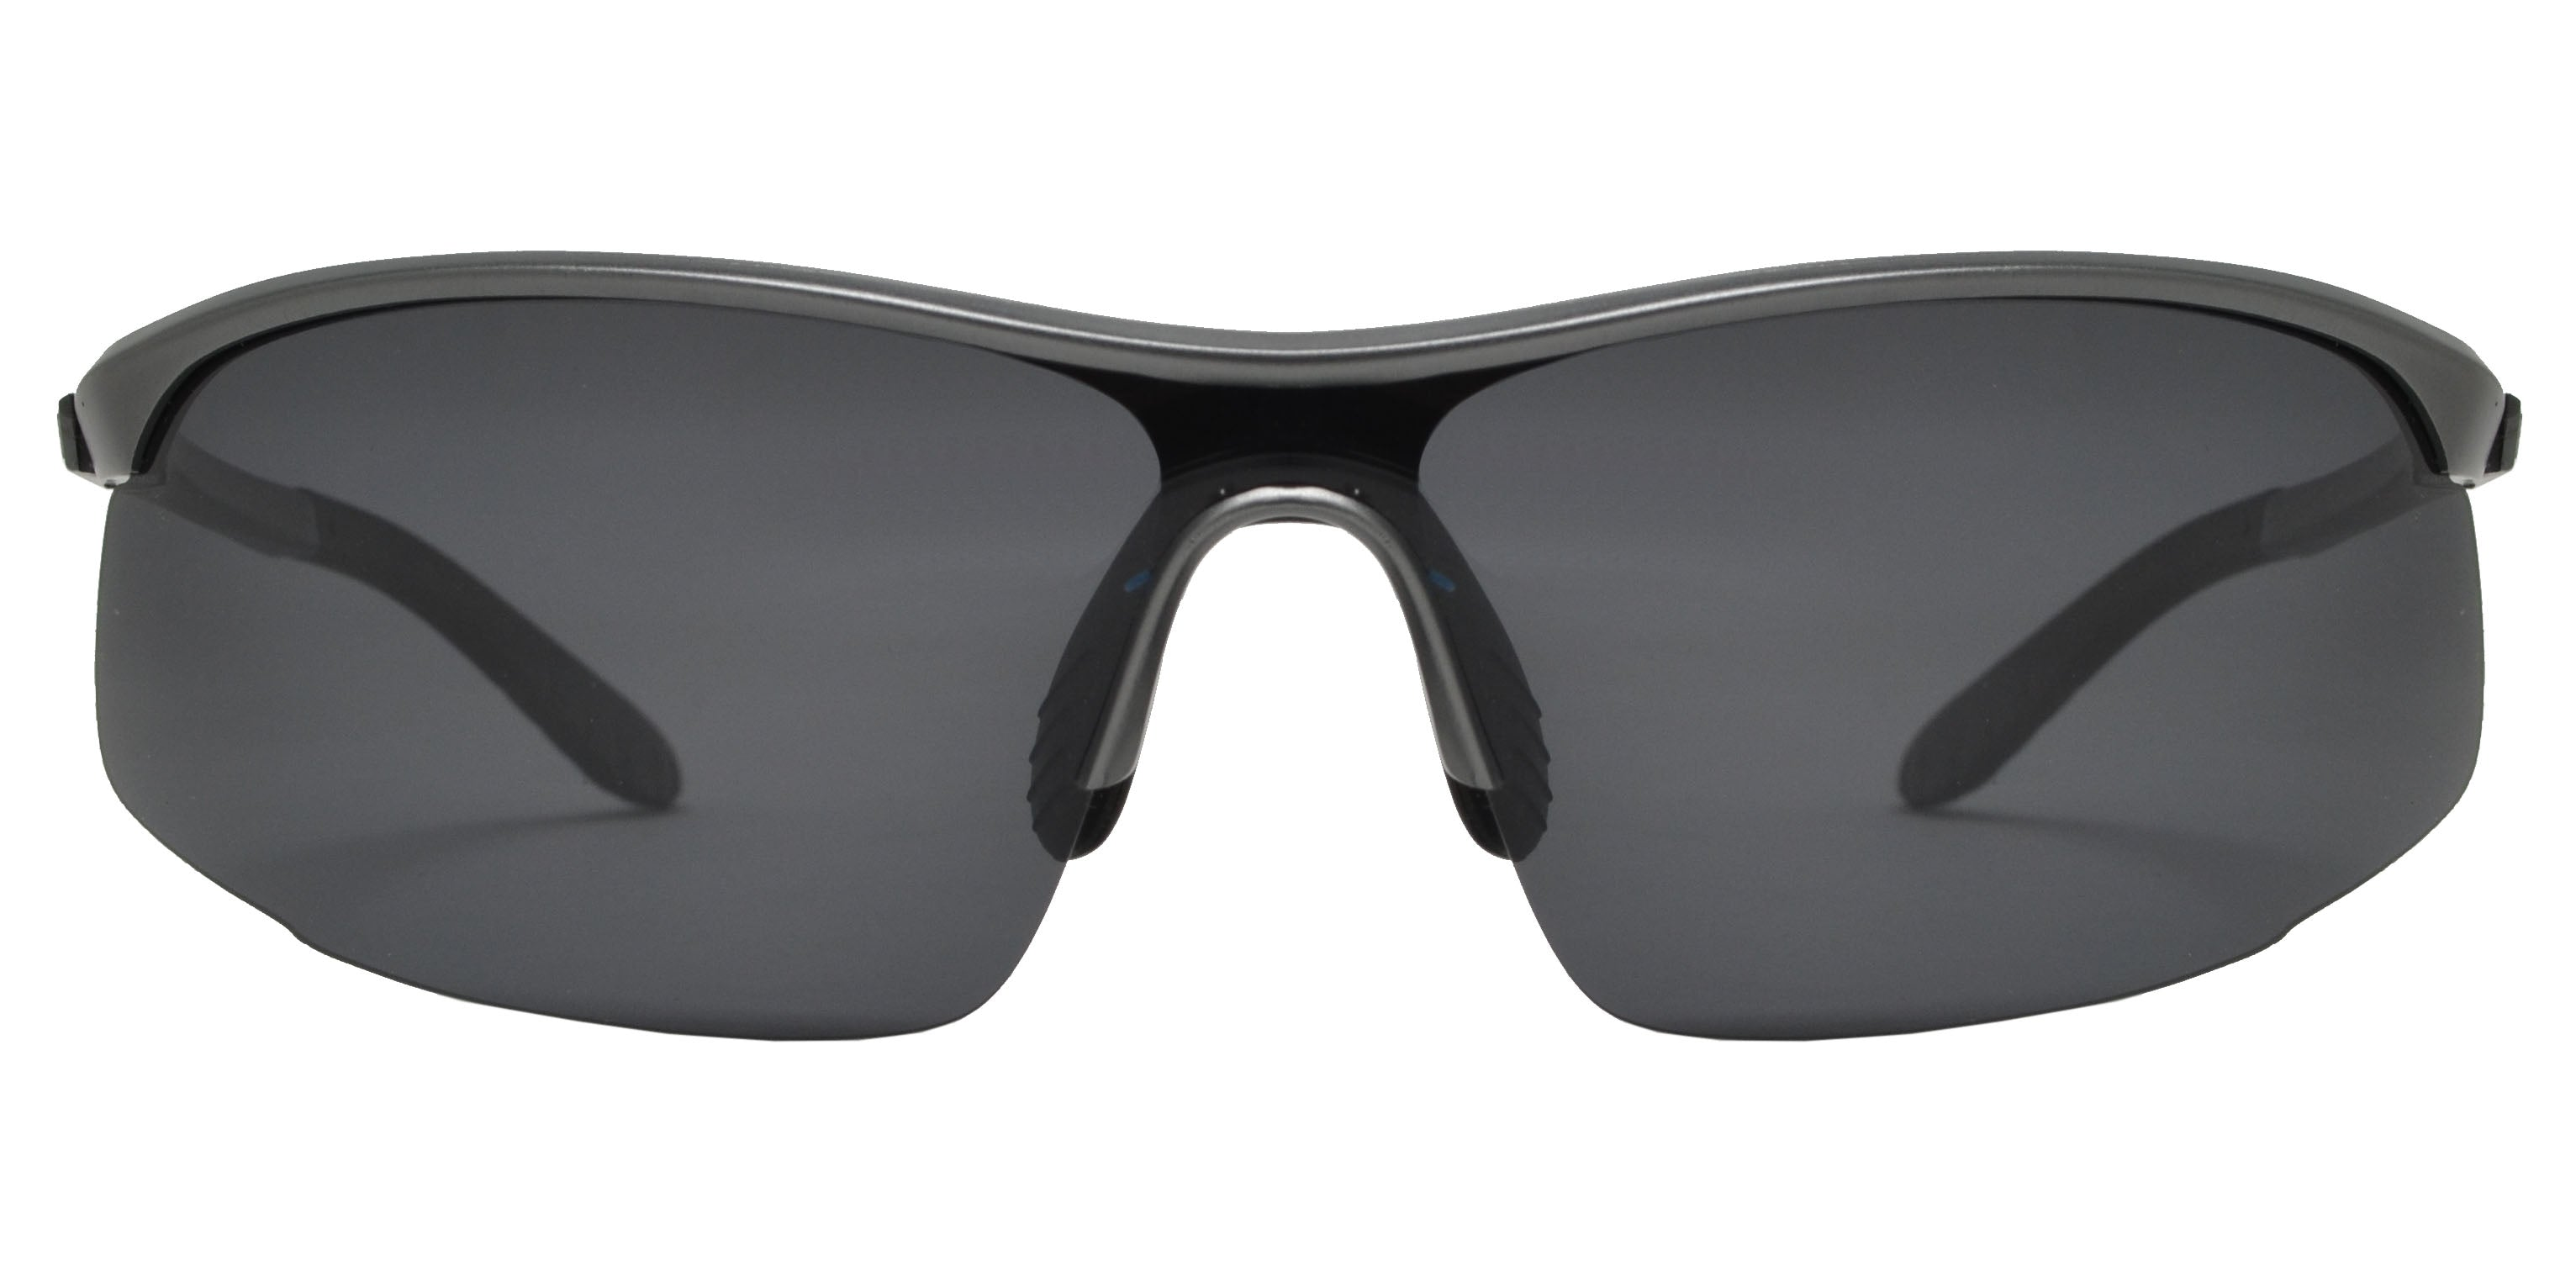 XD PL 300 - Polarized Aluminum-Magnesium Alloy Full Frame Semi Rimless Sunglasses